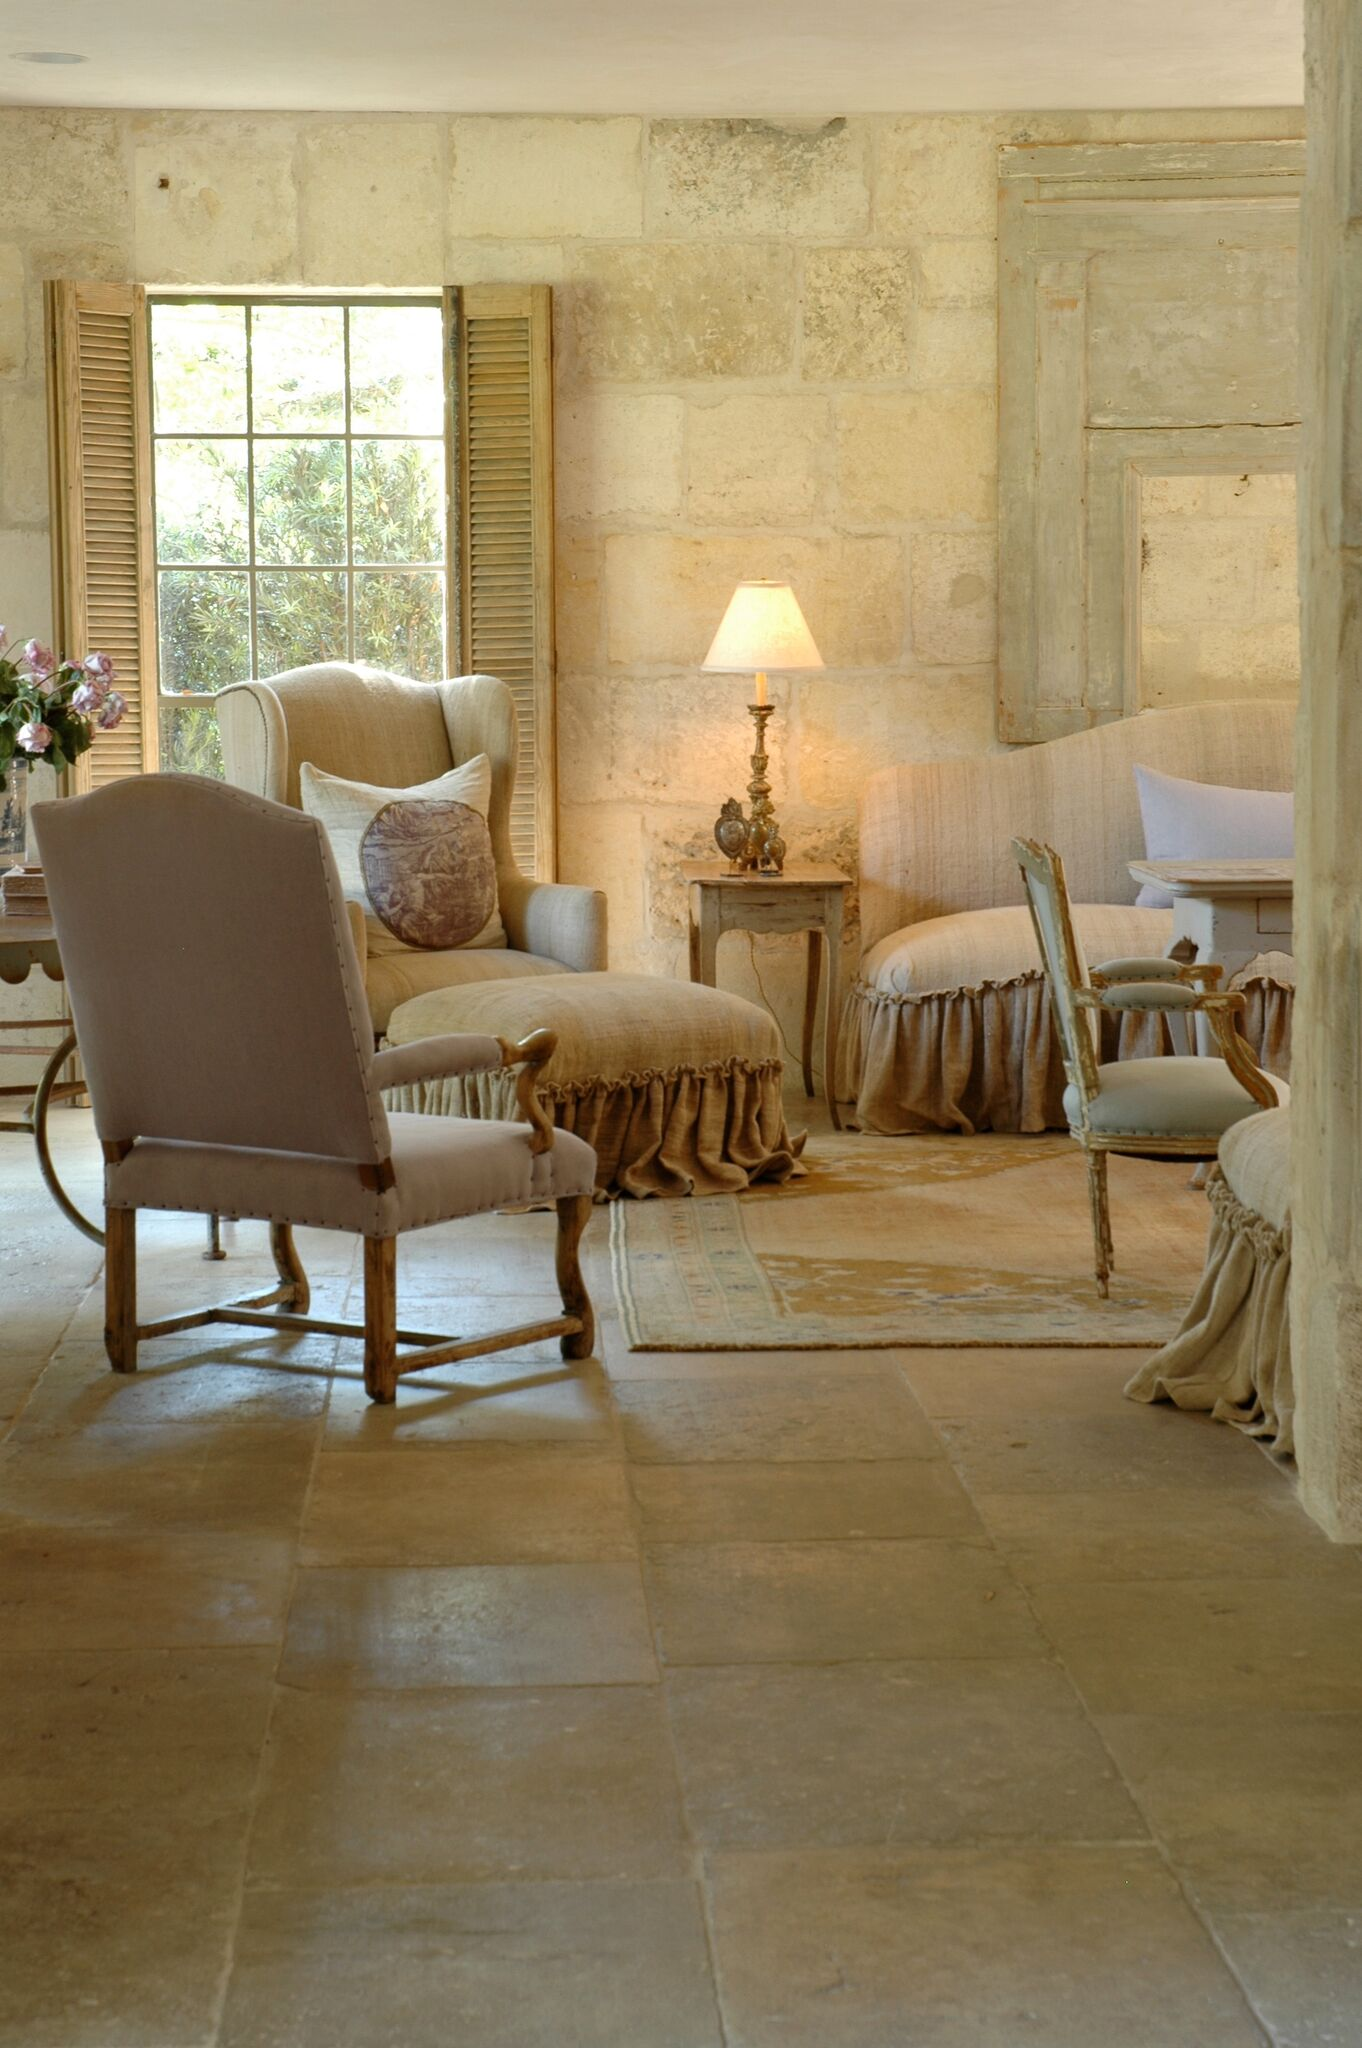 French country living room with reclaimed antique stone floors and walls. Chateau Domingue. Design by Pamela Pierce.